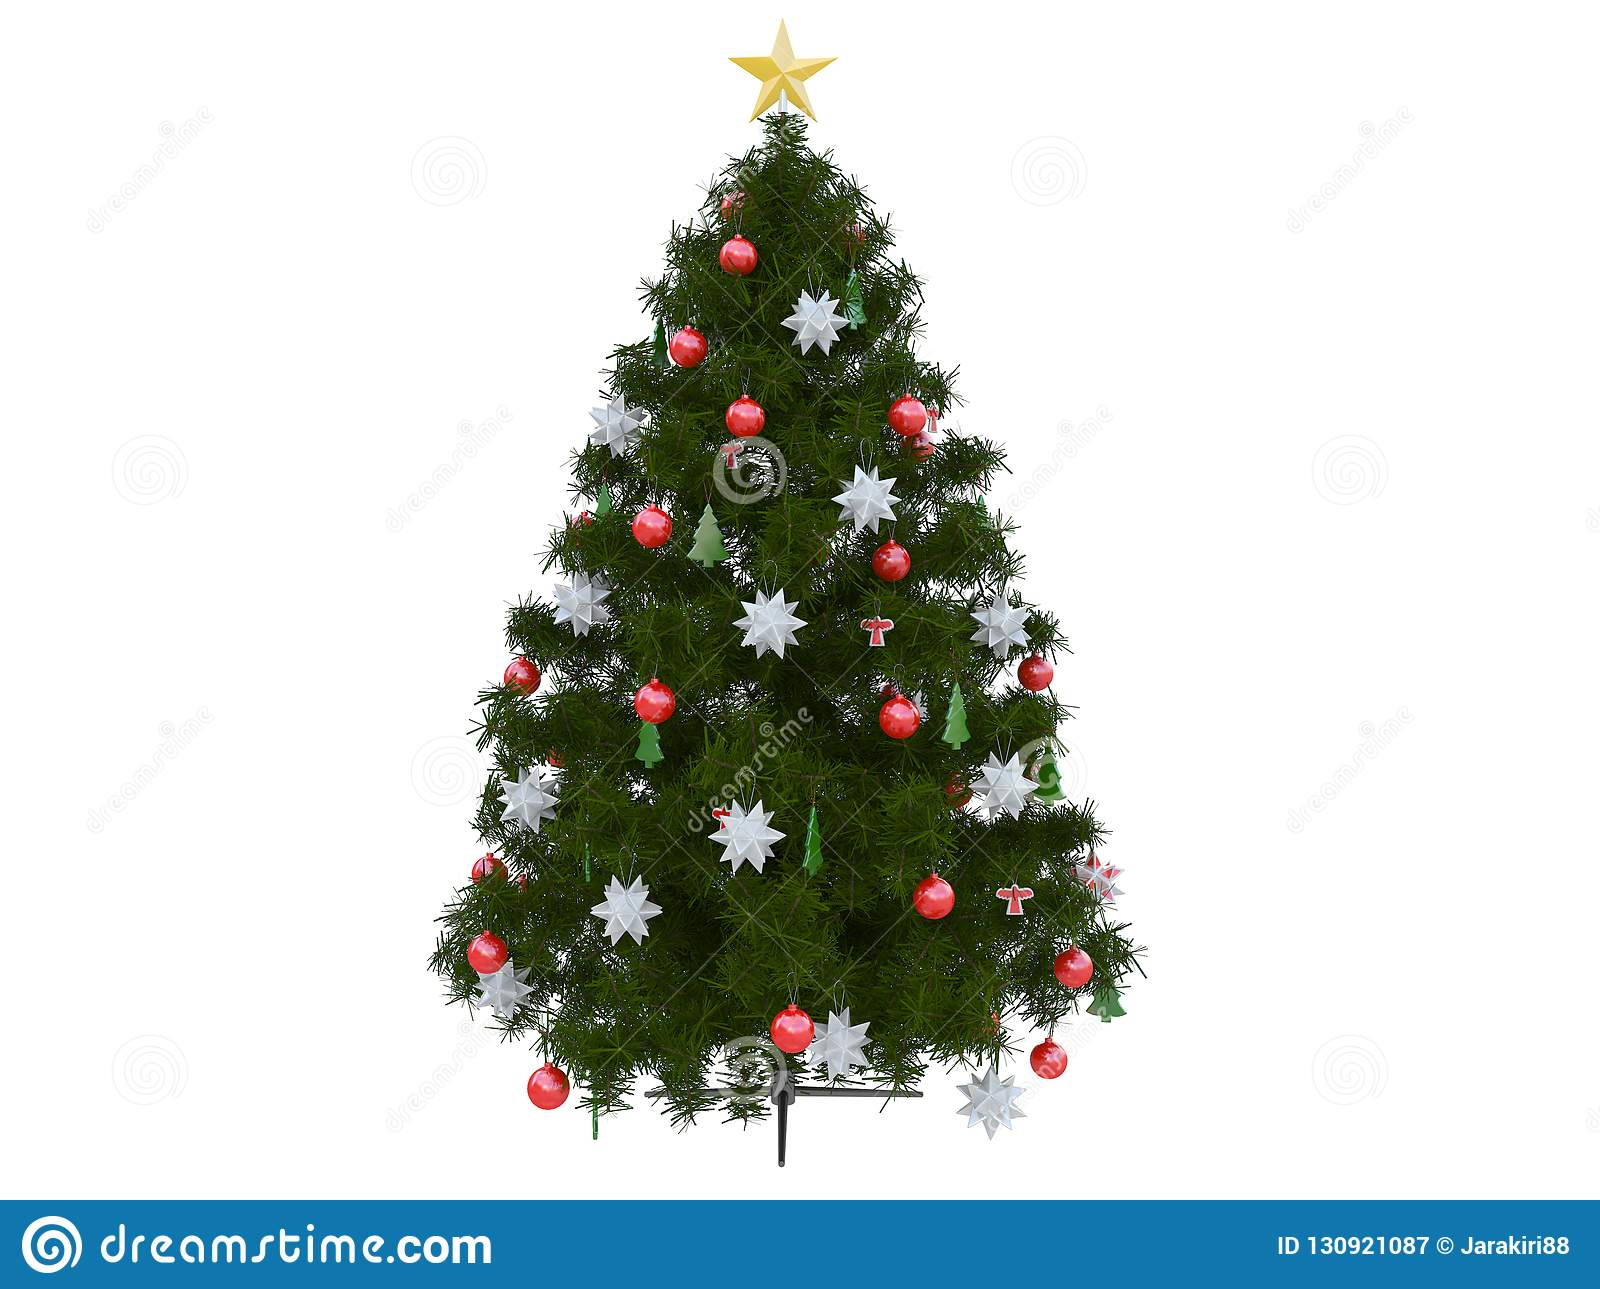 Colorful Christmas Tree With Christmas Balls Decoration White And Red And A Silver Ribbon 3d Rendering Stock Illustration Illustration Of Golden Background 130921087